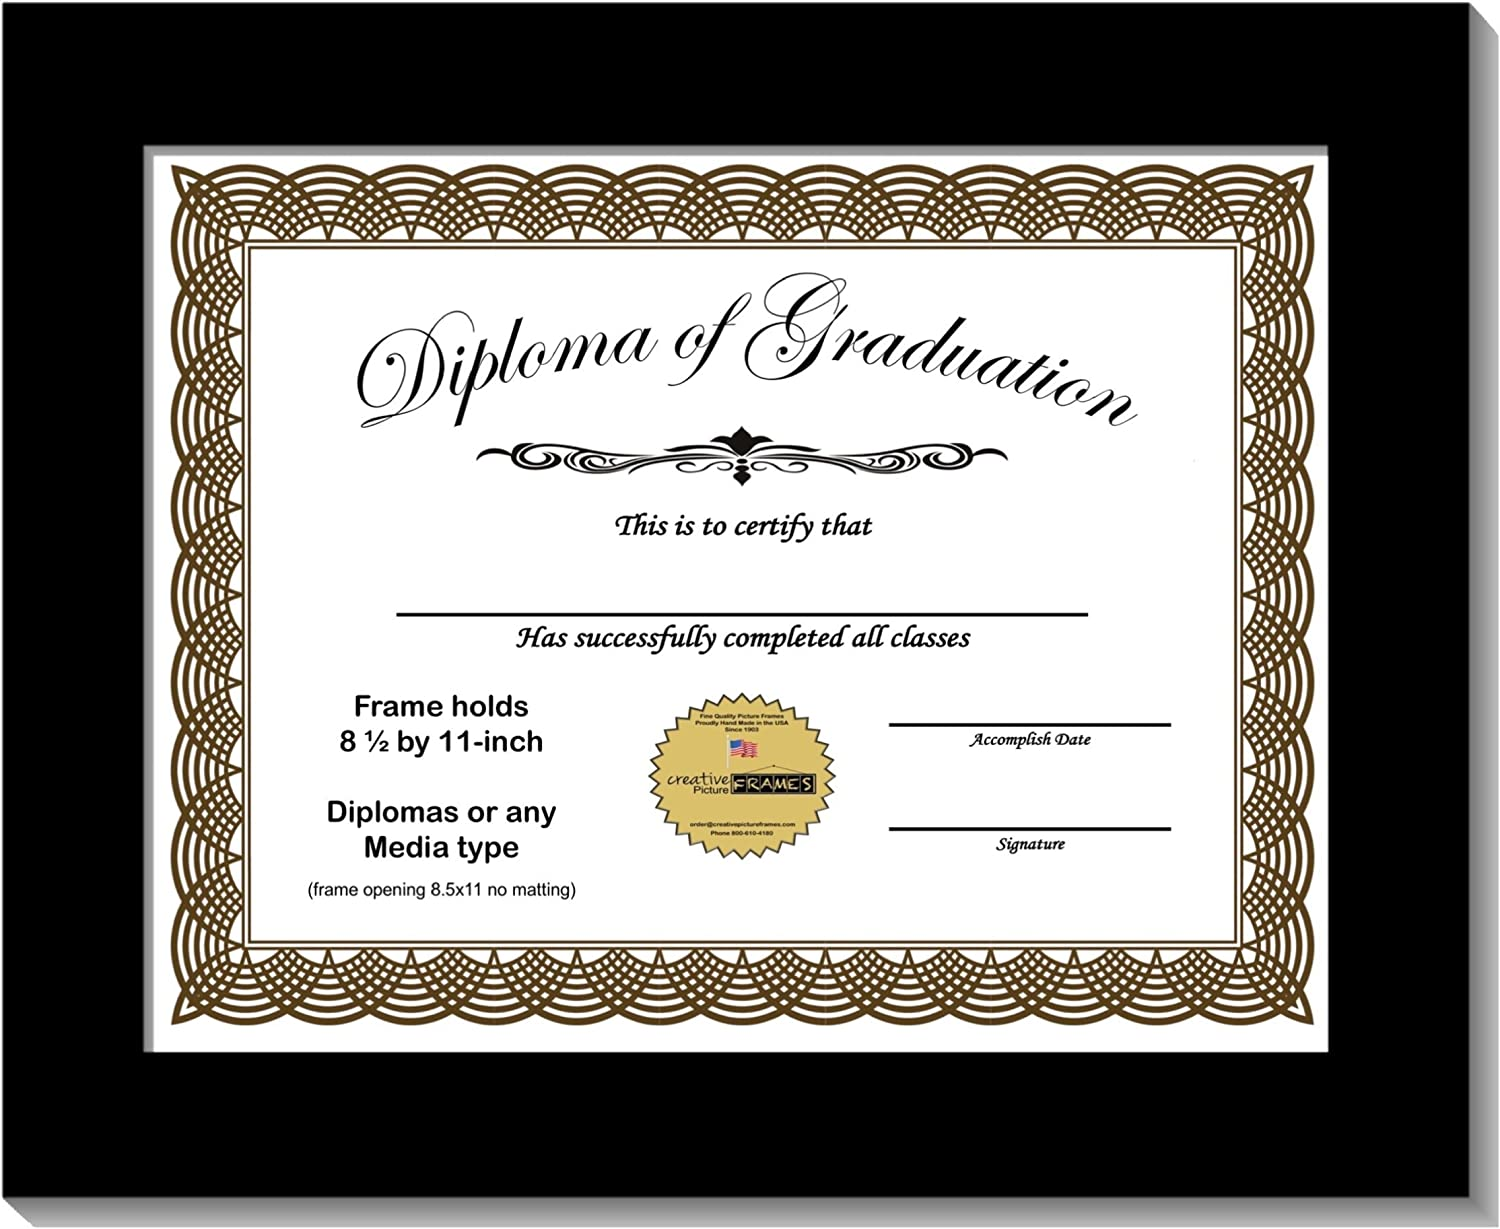 CreativePF 8.5x11bk Black Diploma Max 62% OFF Frame Holds by 8.5 Max 80% OFF 11-inch